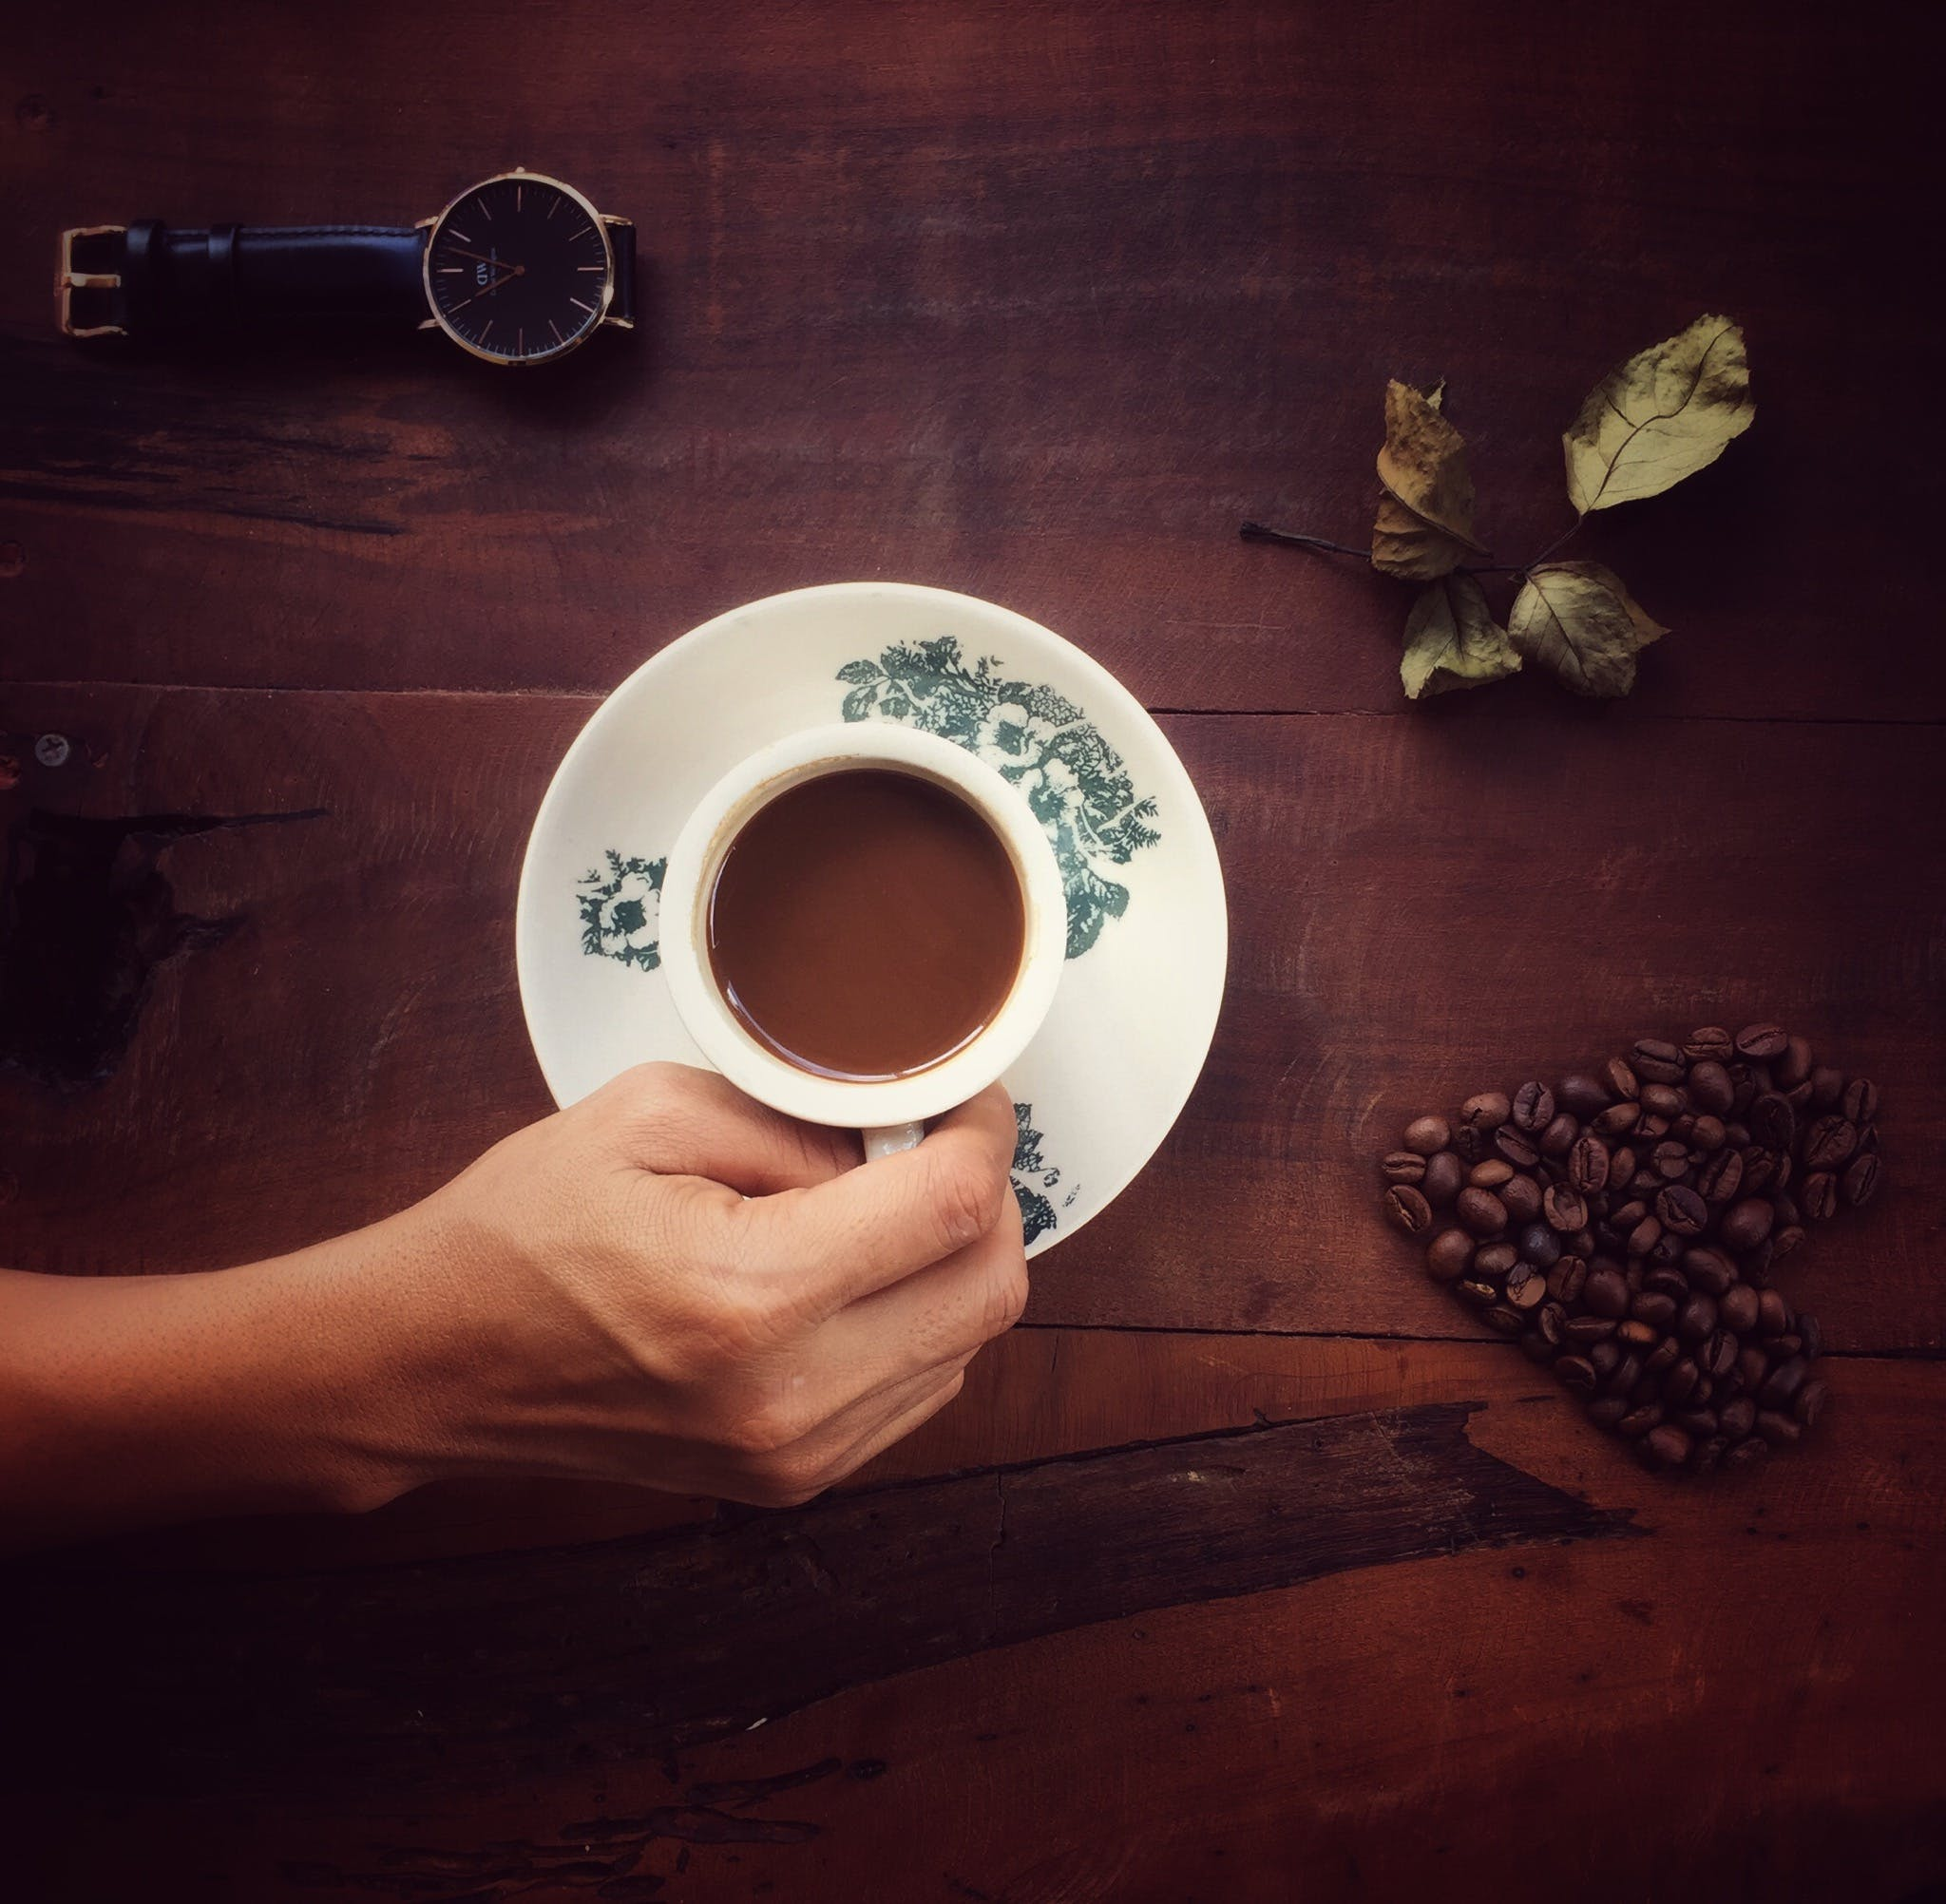 Cup of Coffee on Saucer Plate